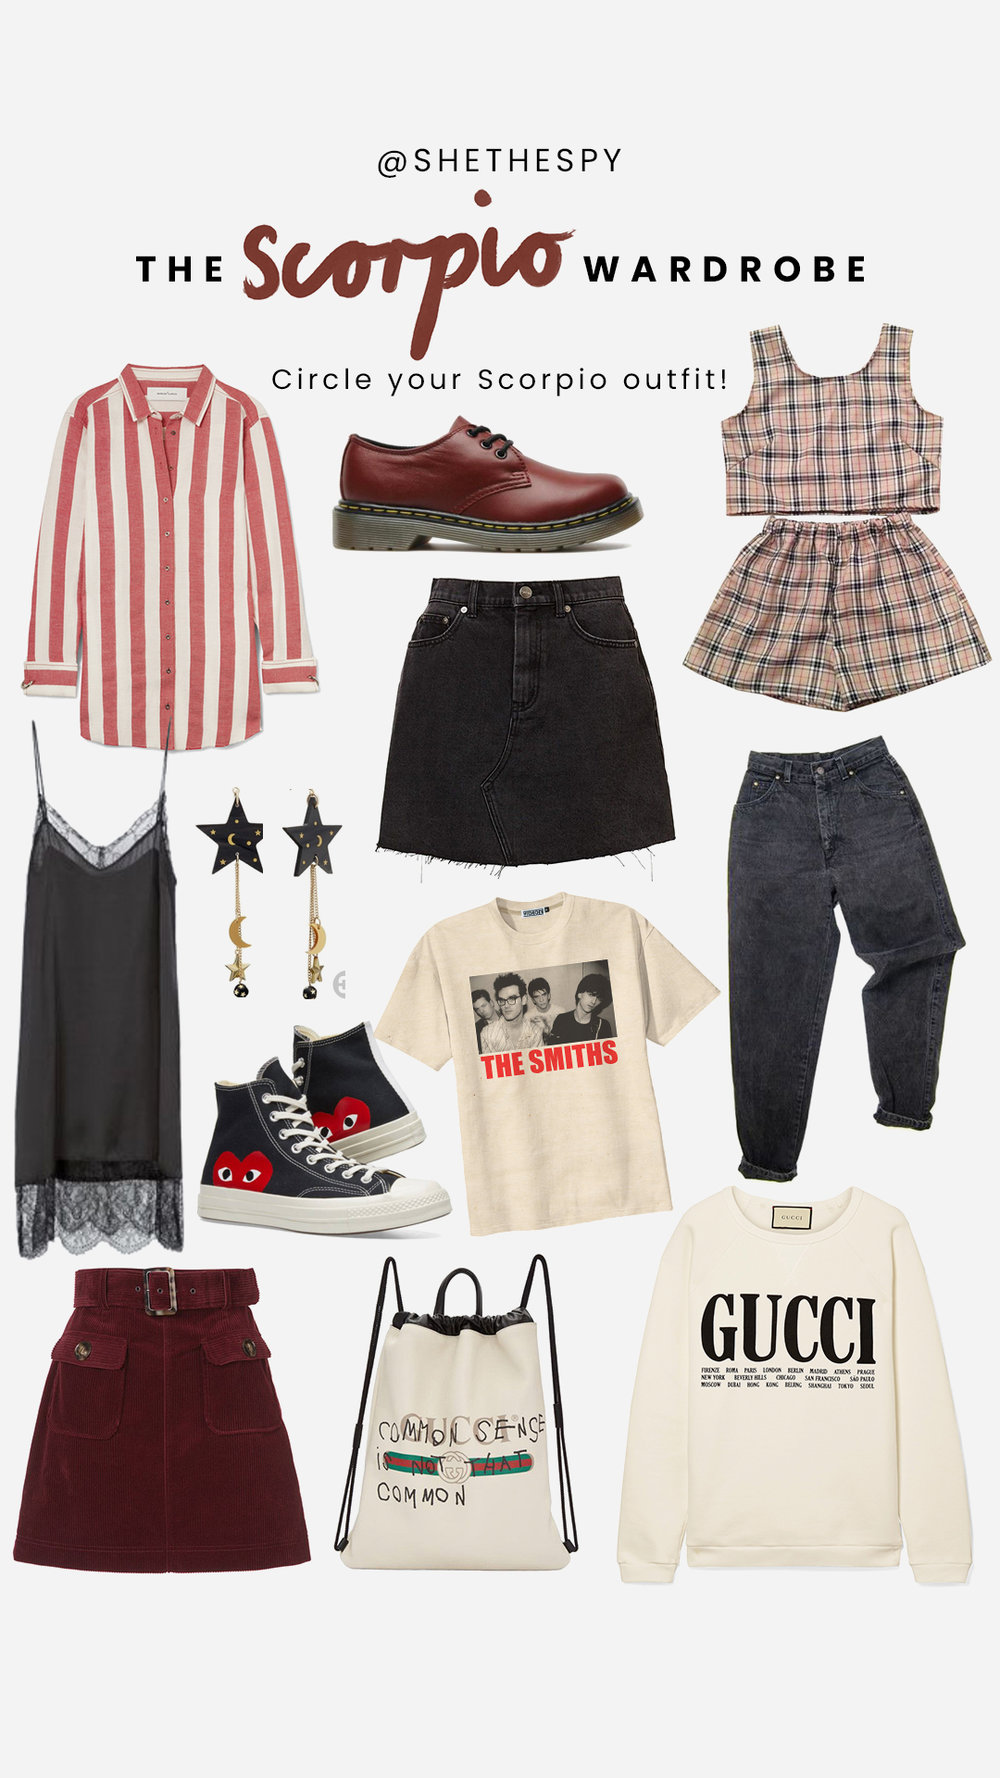 Shop Scorpio - Shirt: Marques AlmeidaShoes: Dr MartensSneakers: Comme Des GarconsSet: UnknownDenim skirt: Similar at AsosDenim: UnknownDress: Similar at AsosEarrings: UnkownTee: VintageRed skirt: Alexa ChungSweater: GucciBag: Gucci - Sold Out